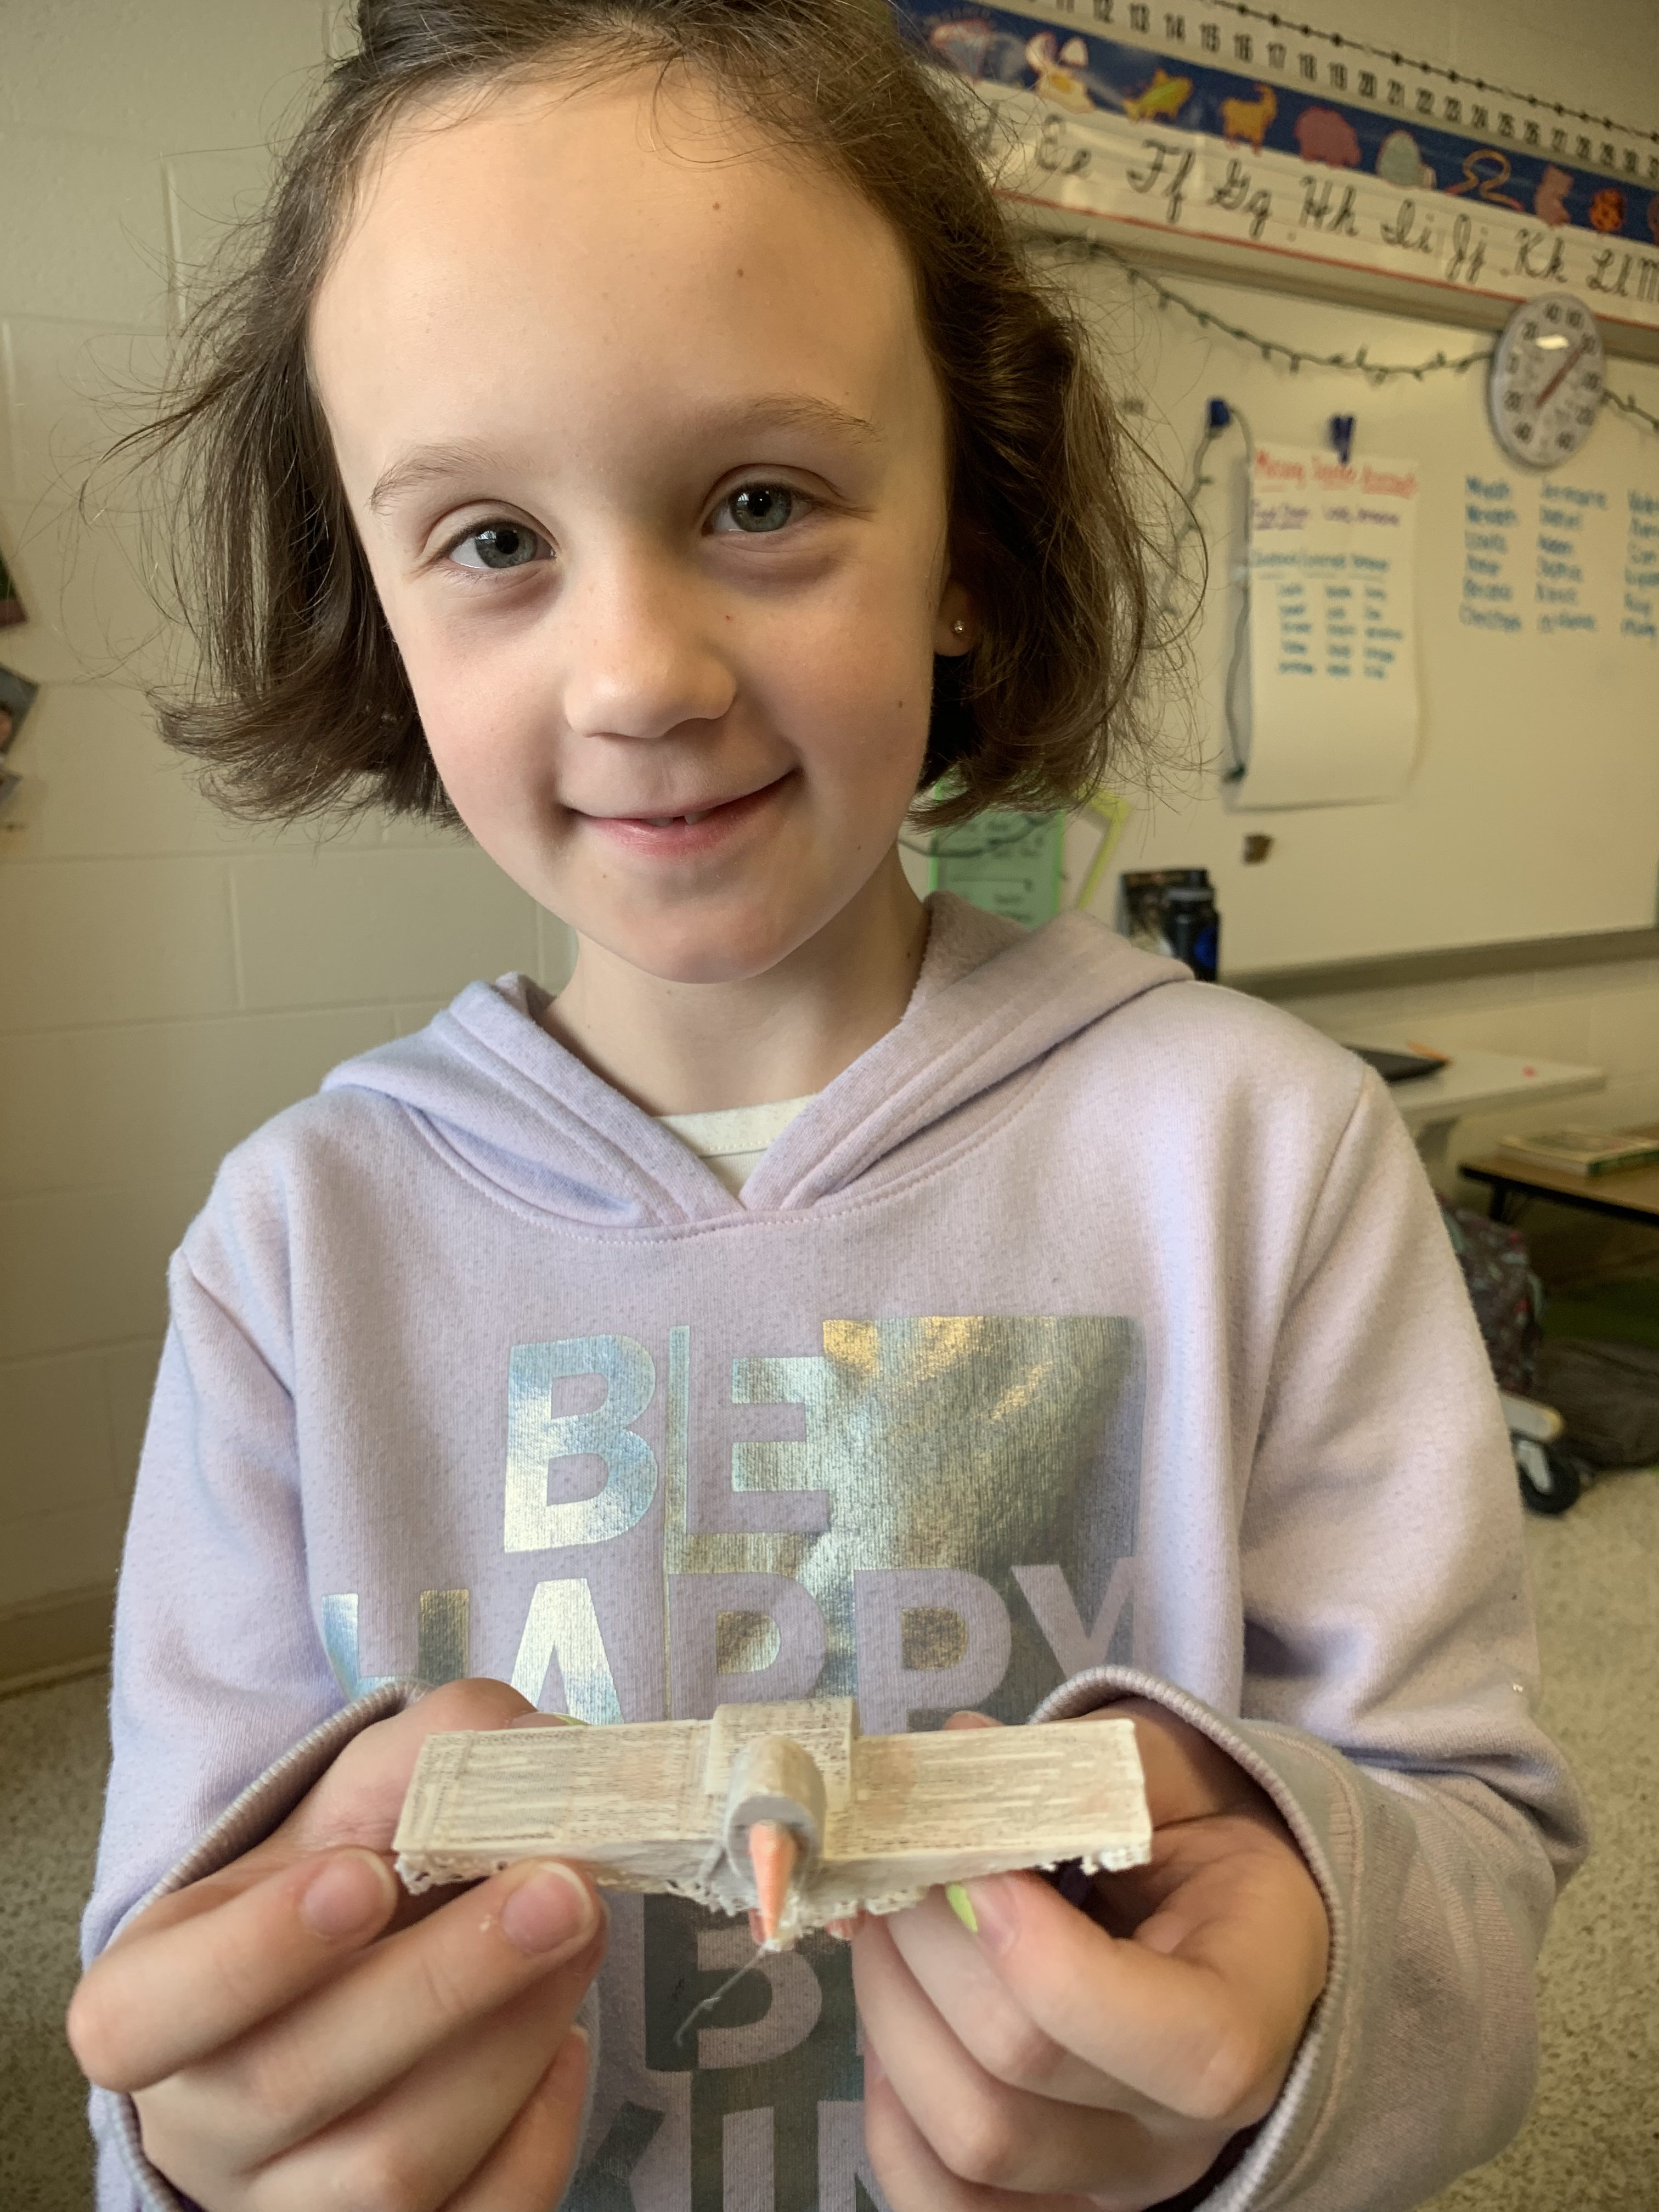 Provident Elementary School third-grader Samantha Farr shows off her osprey that she created using Tinkercad and printed on the 3D printer.